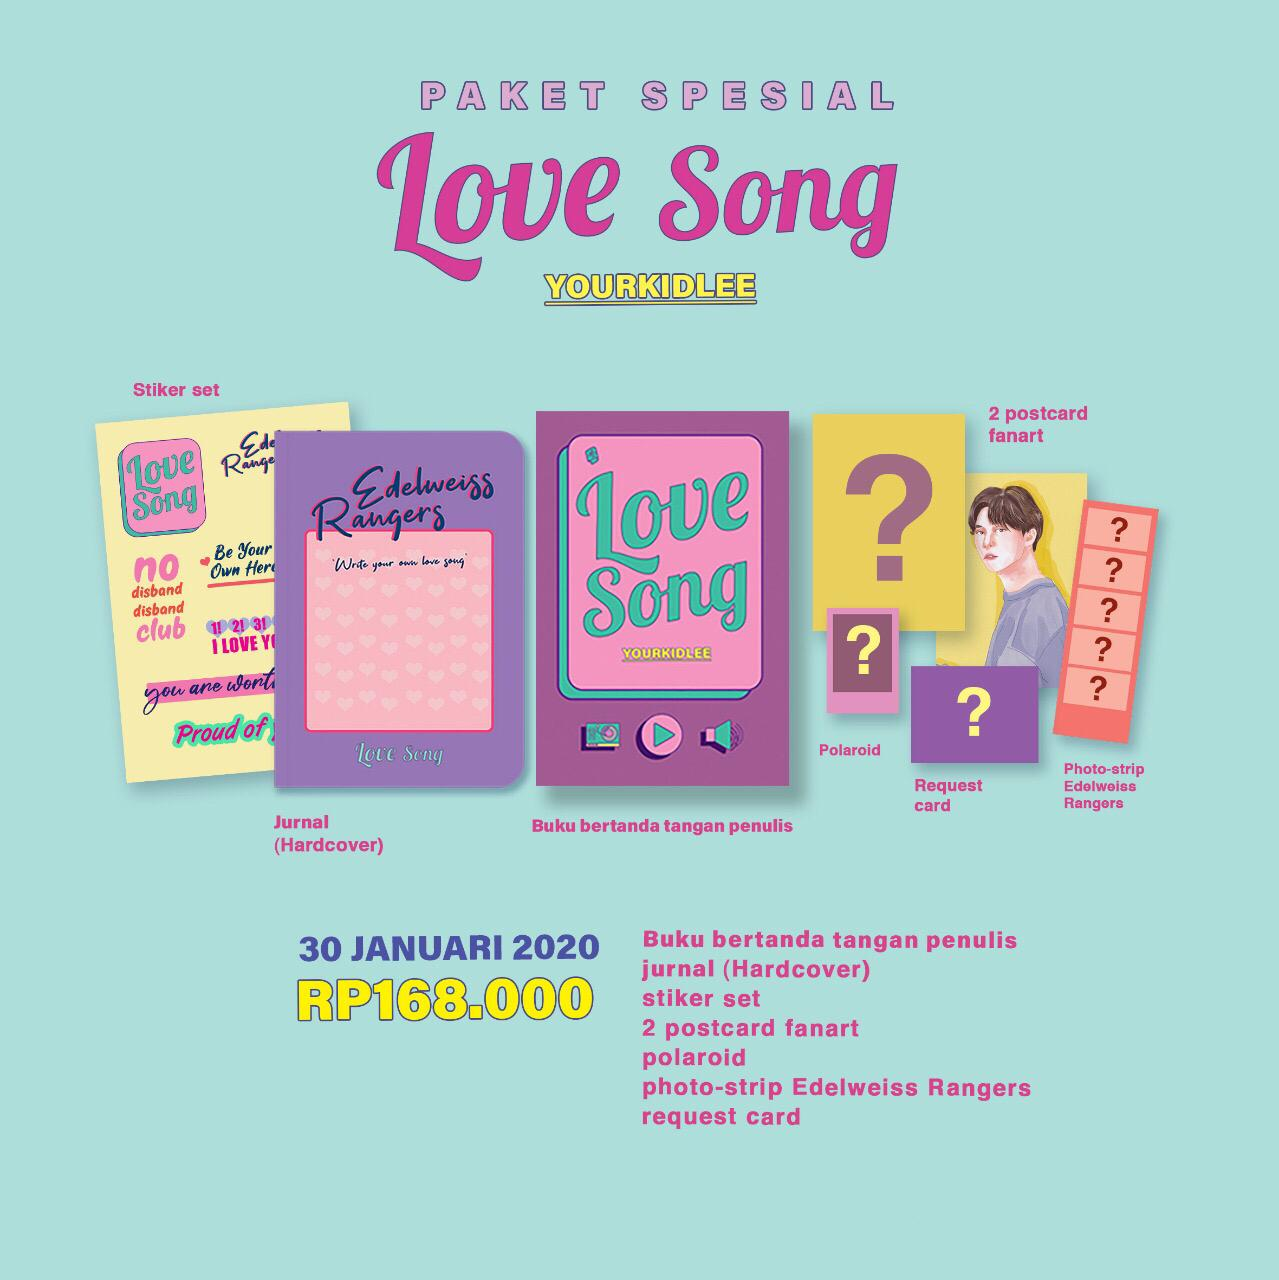 Paket Spesial Love Song - Yourkidlee